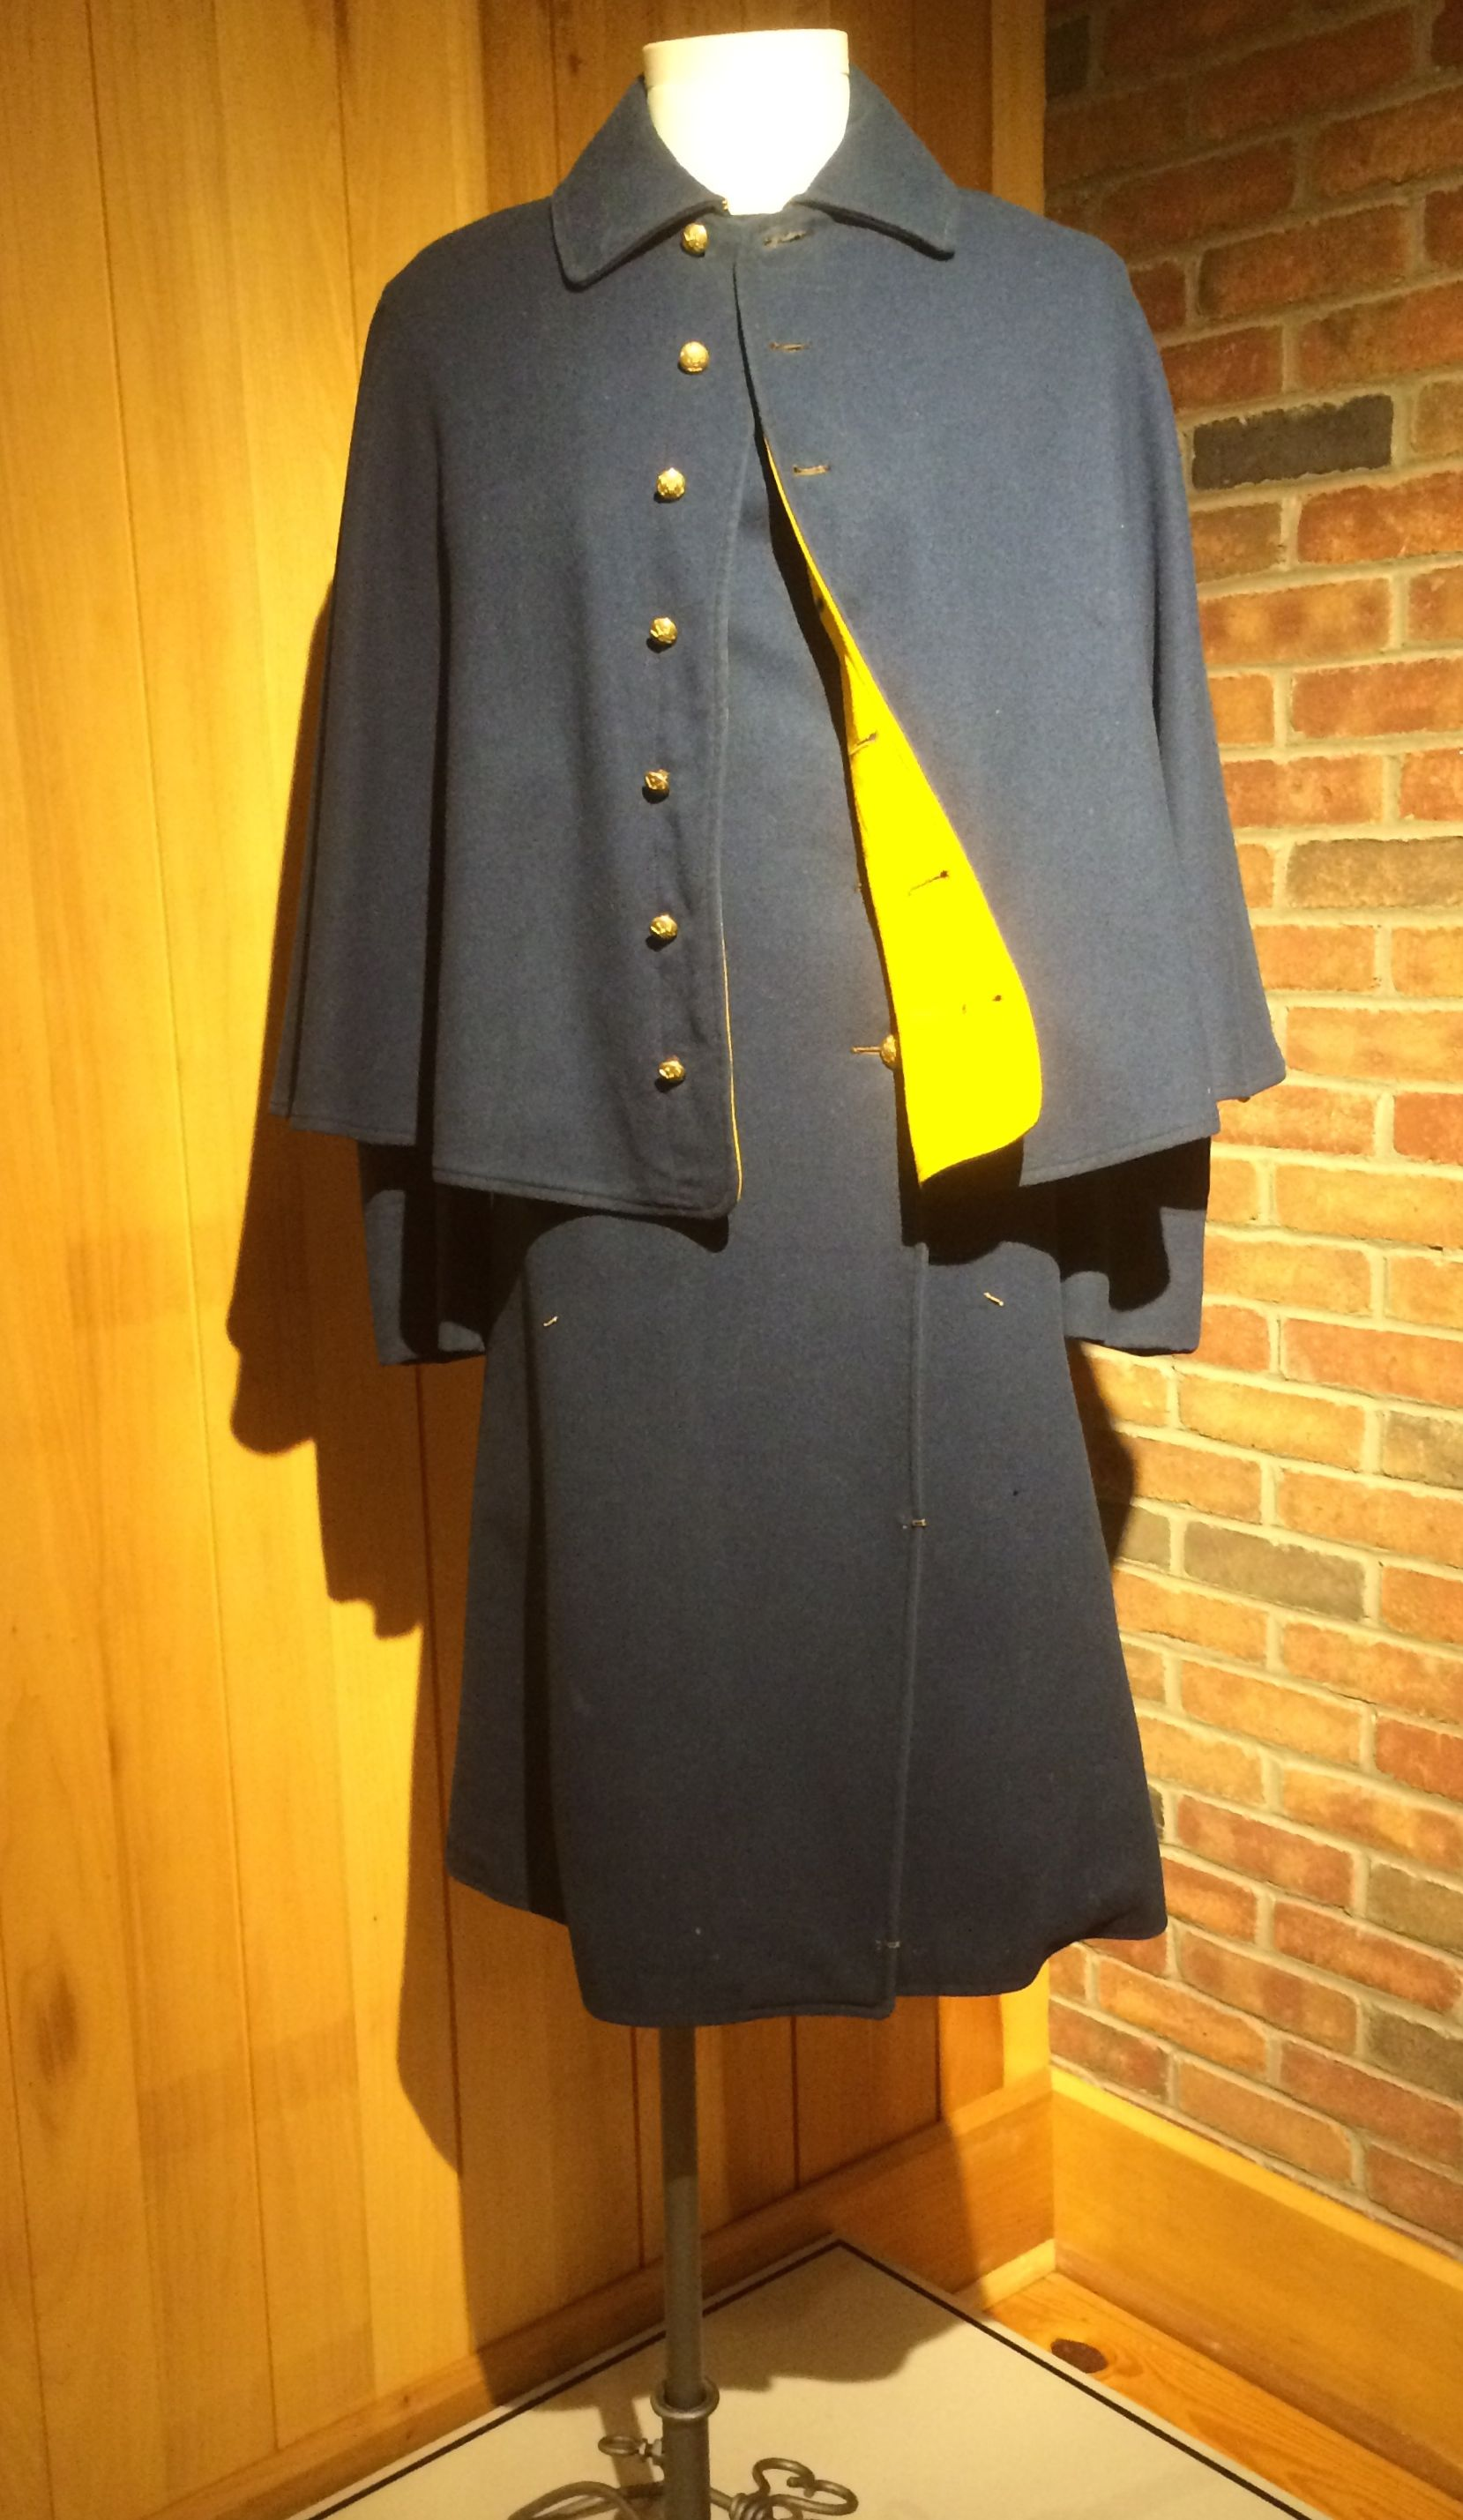 Union overcoat from the Civil War